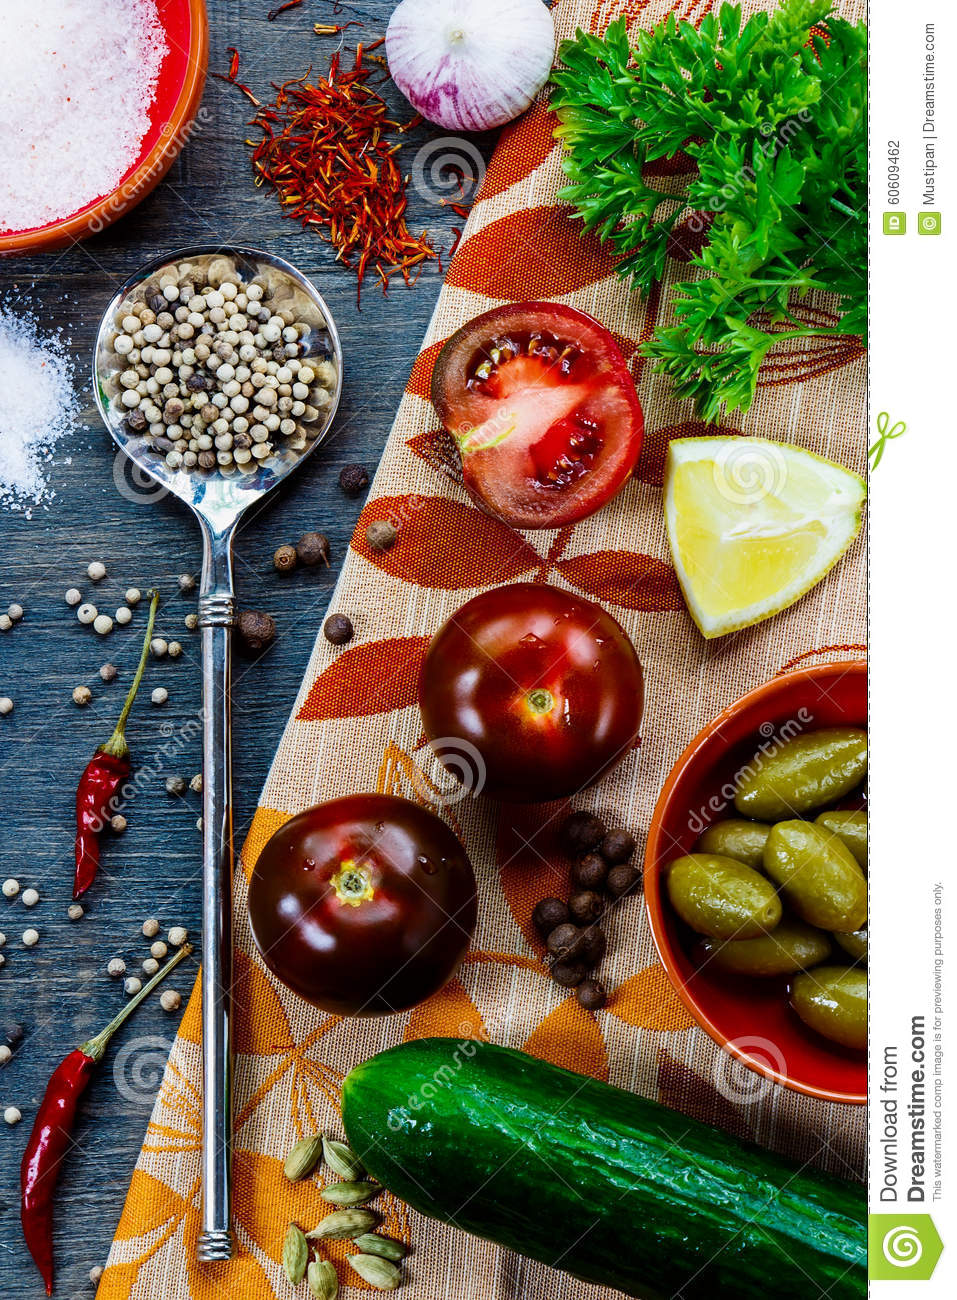 Wallpaper Food Cooking Grill Vegetables Peppers: Ingredients Stock Photo